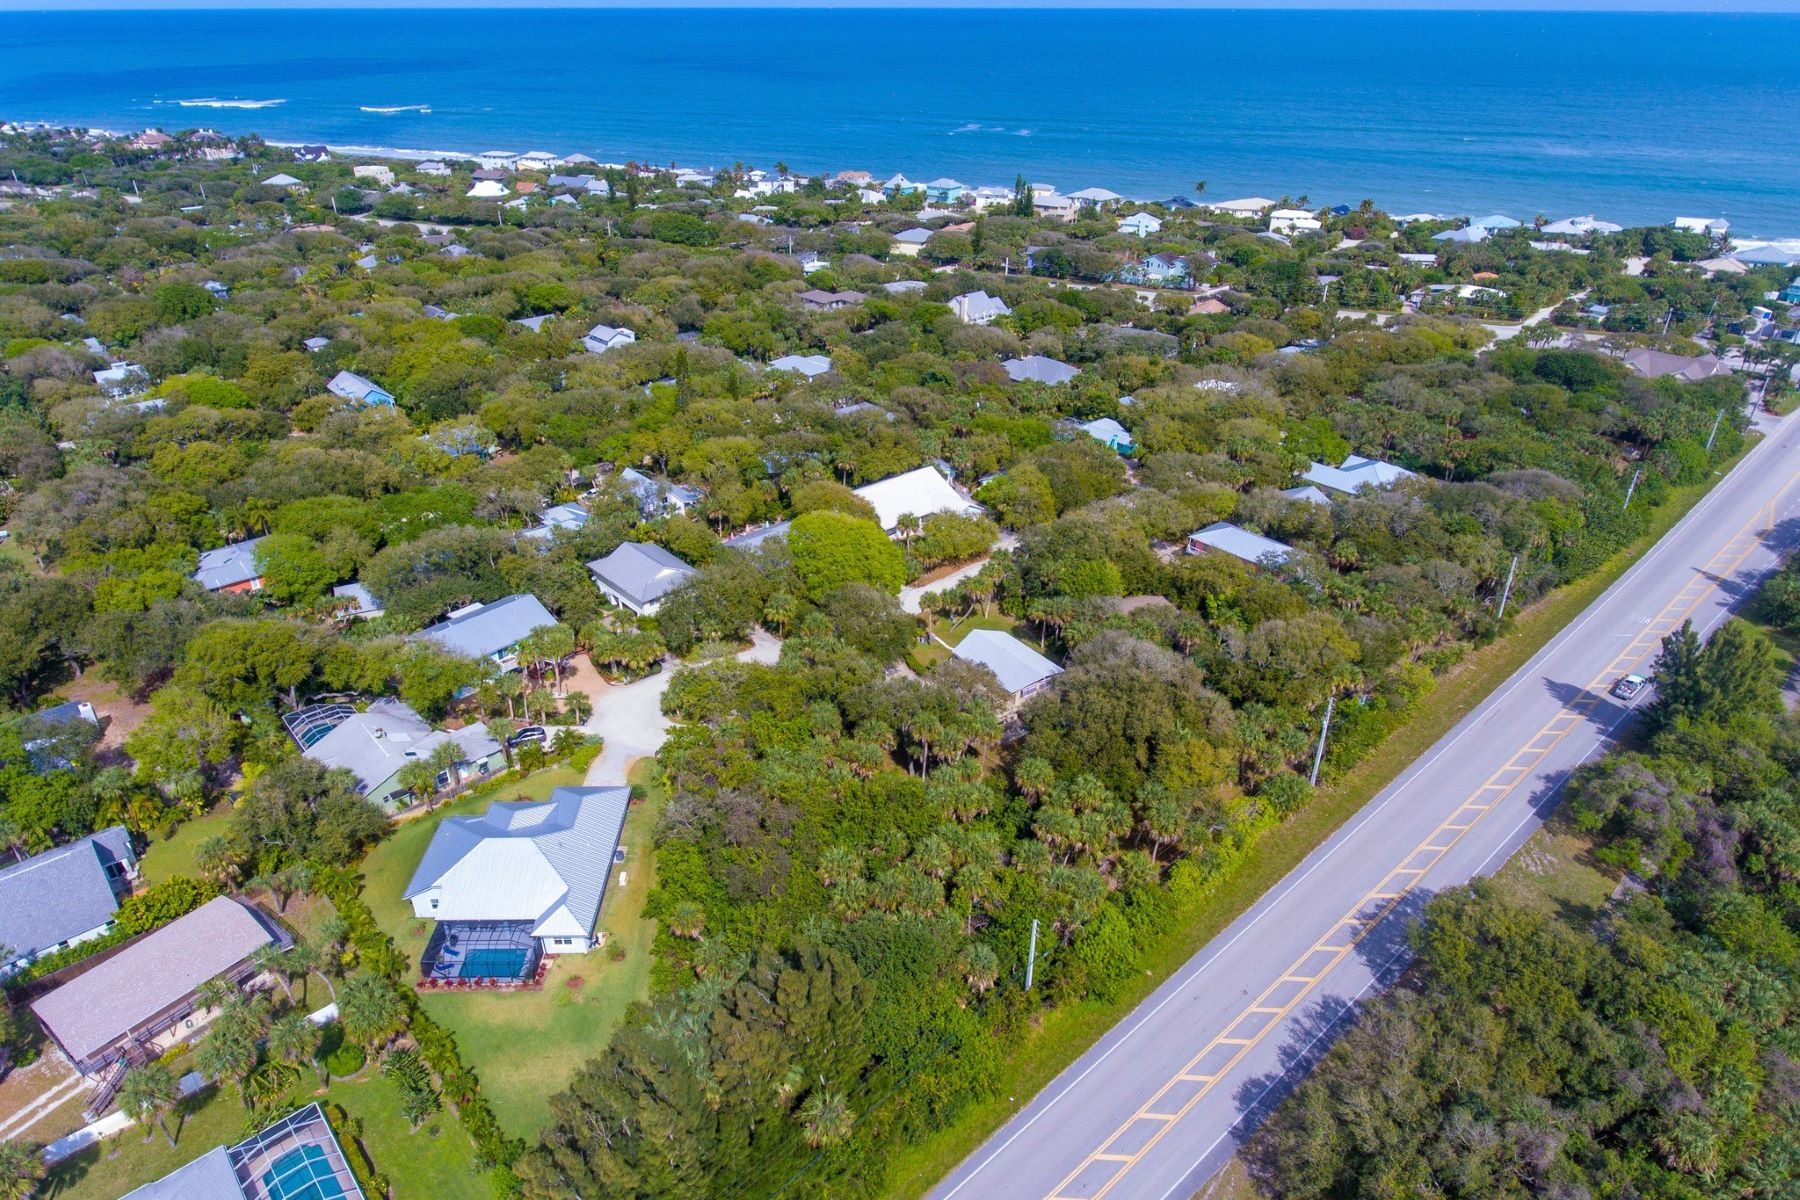 Land for Sale at 1991 W Shell Lane Vero Beach, Florida 32963 United States